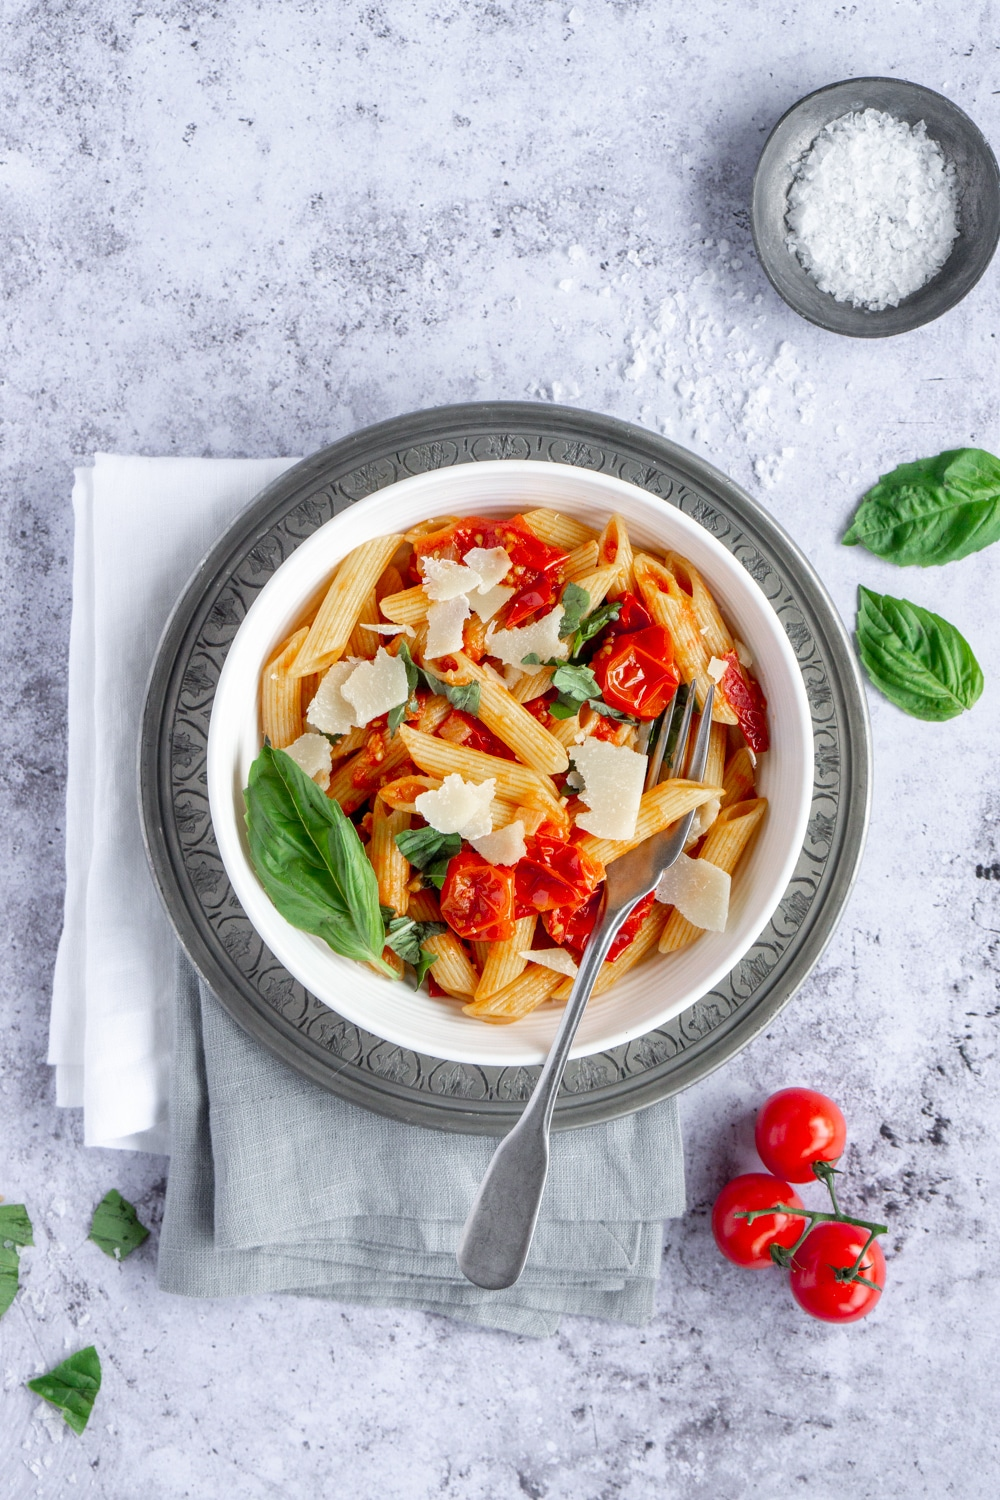 Pasta pomodoro in a bowl with a fork in the bowl